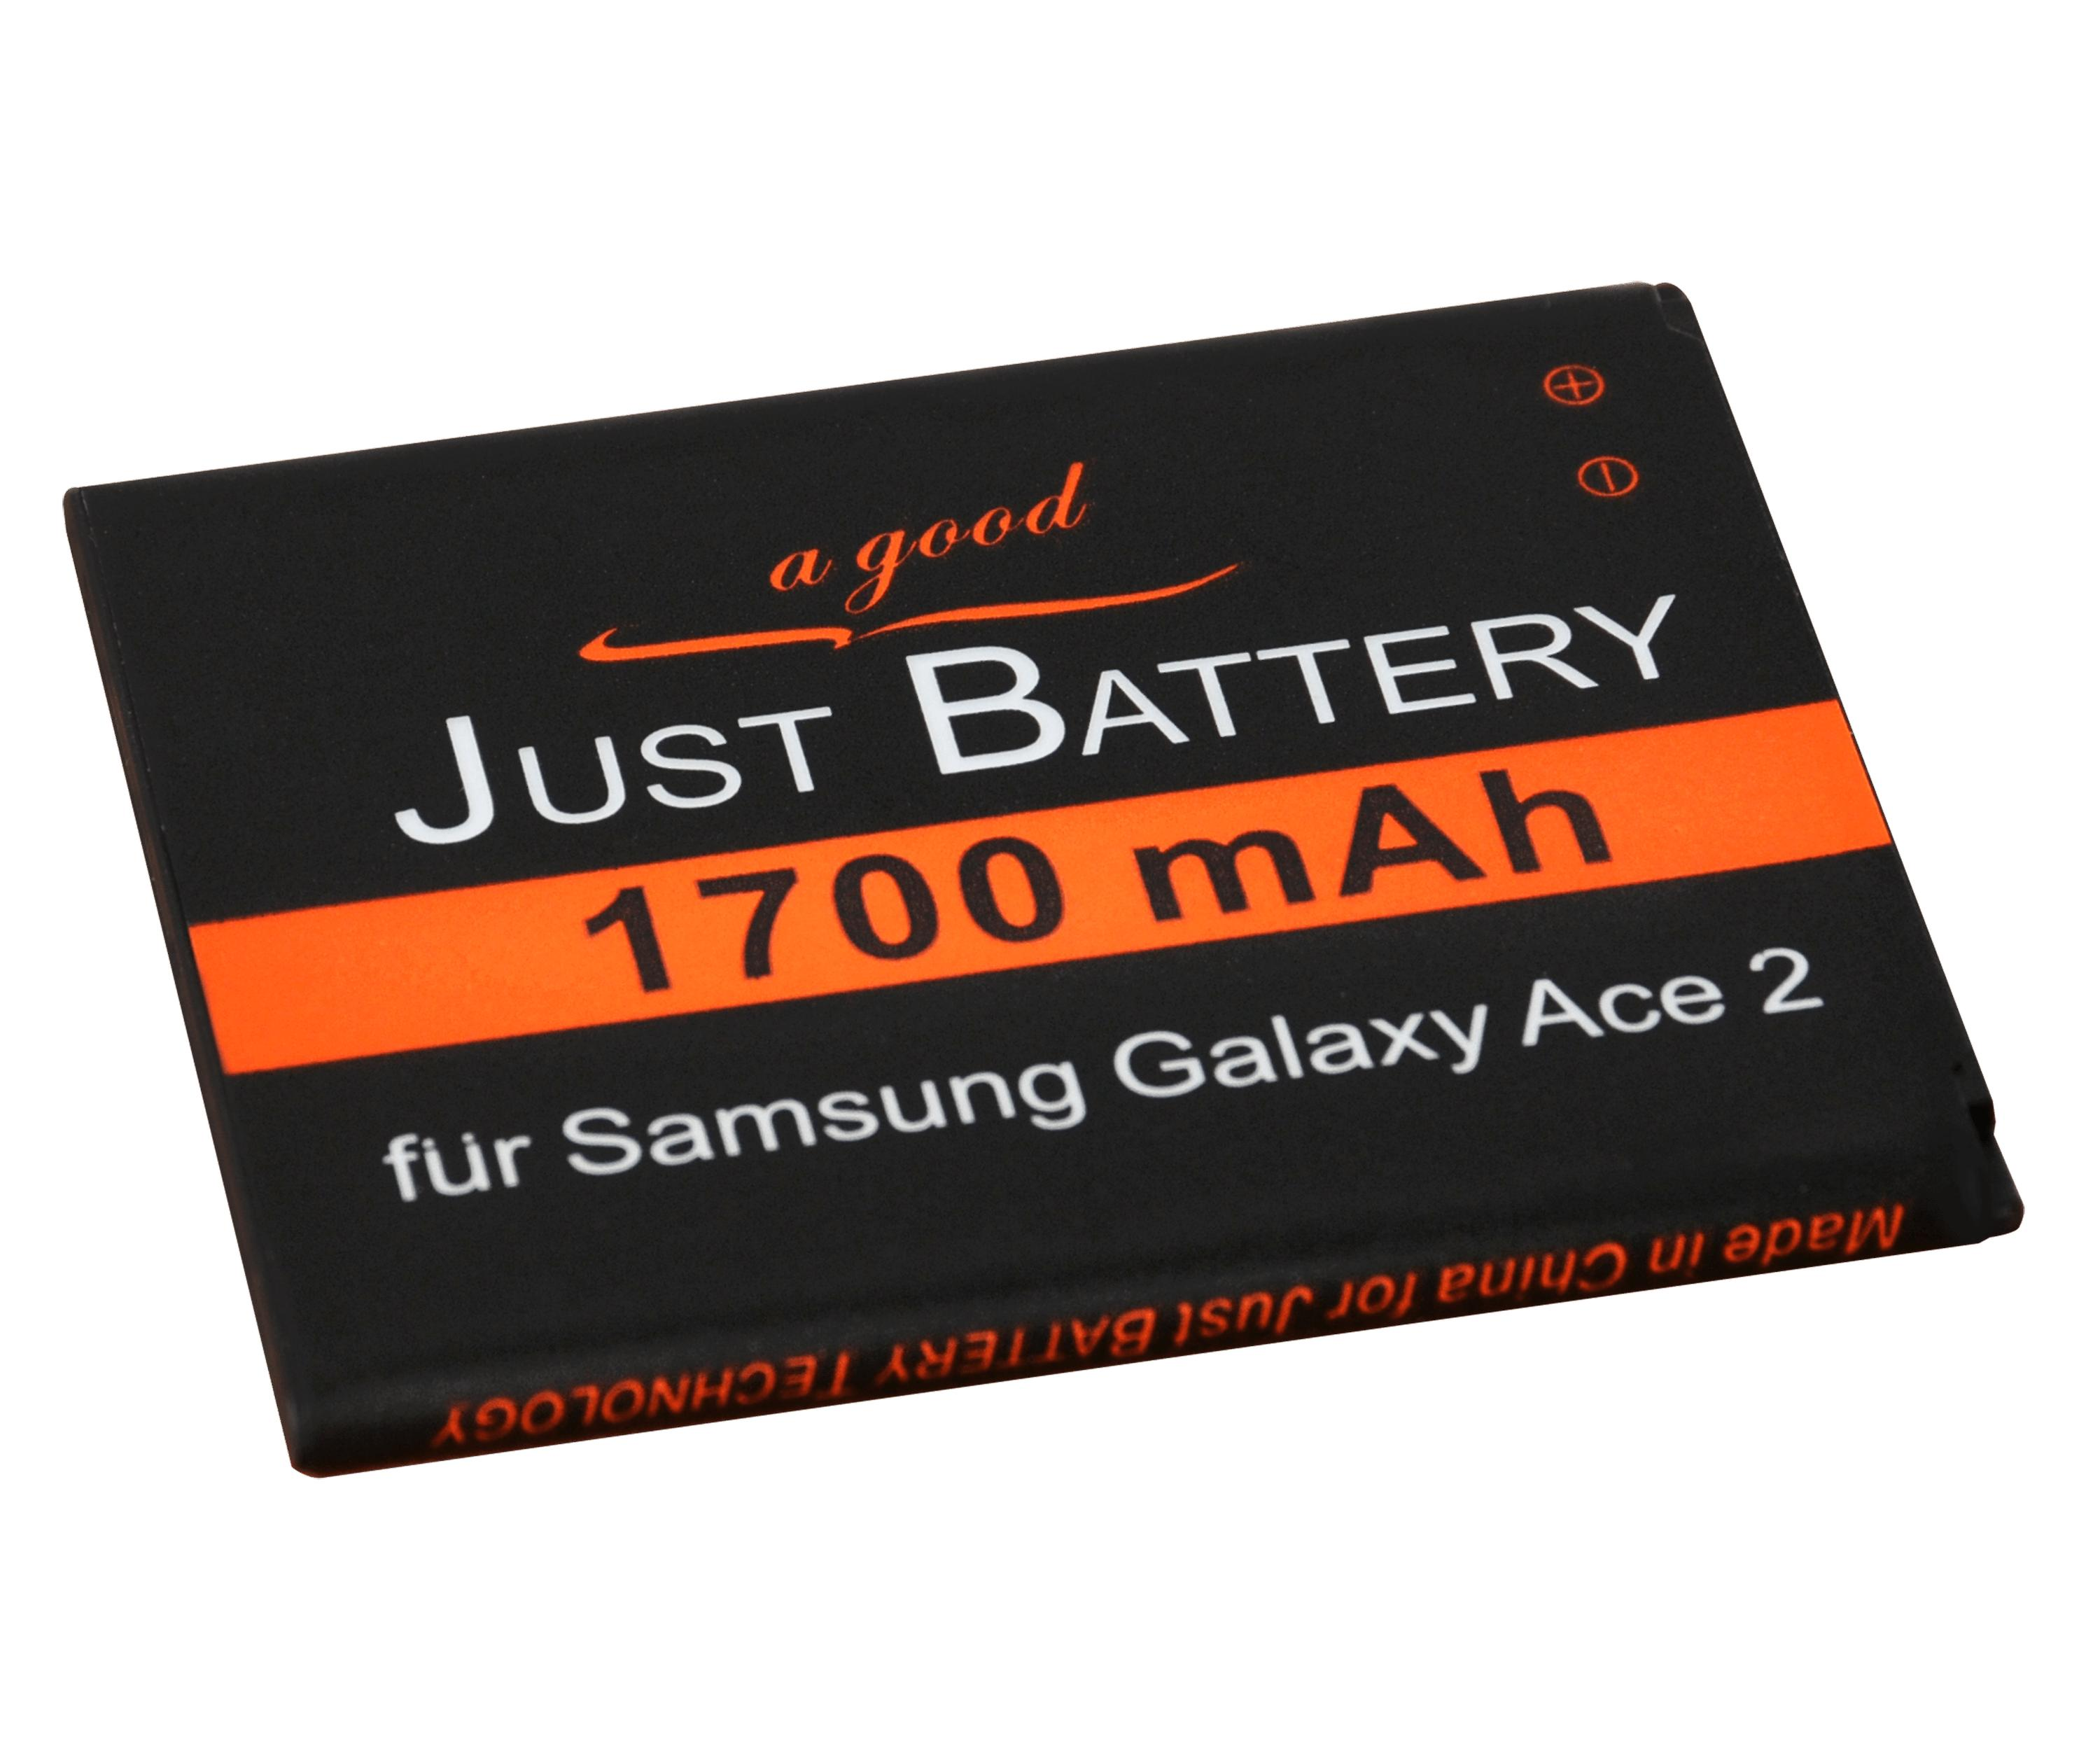 Battery for Samsung Galaxy GT-s7560 trend